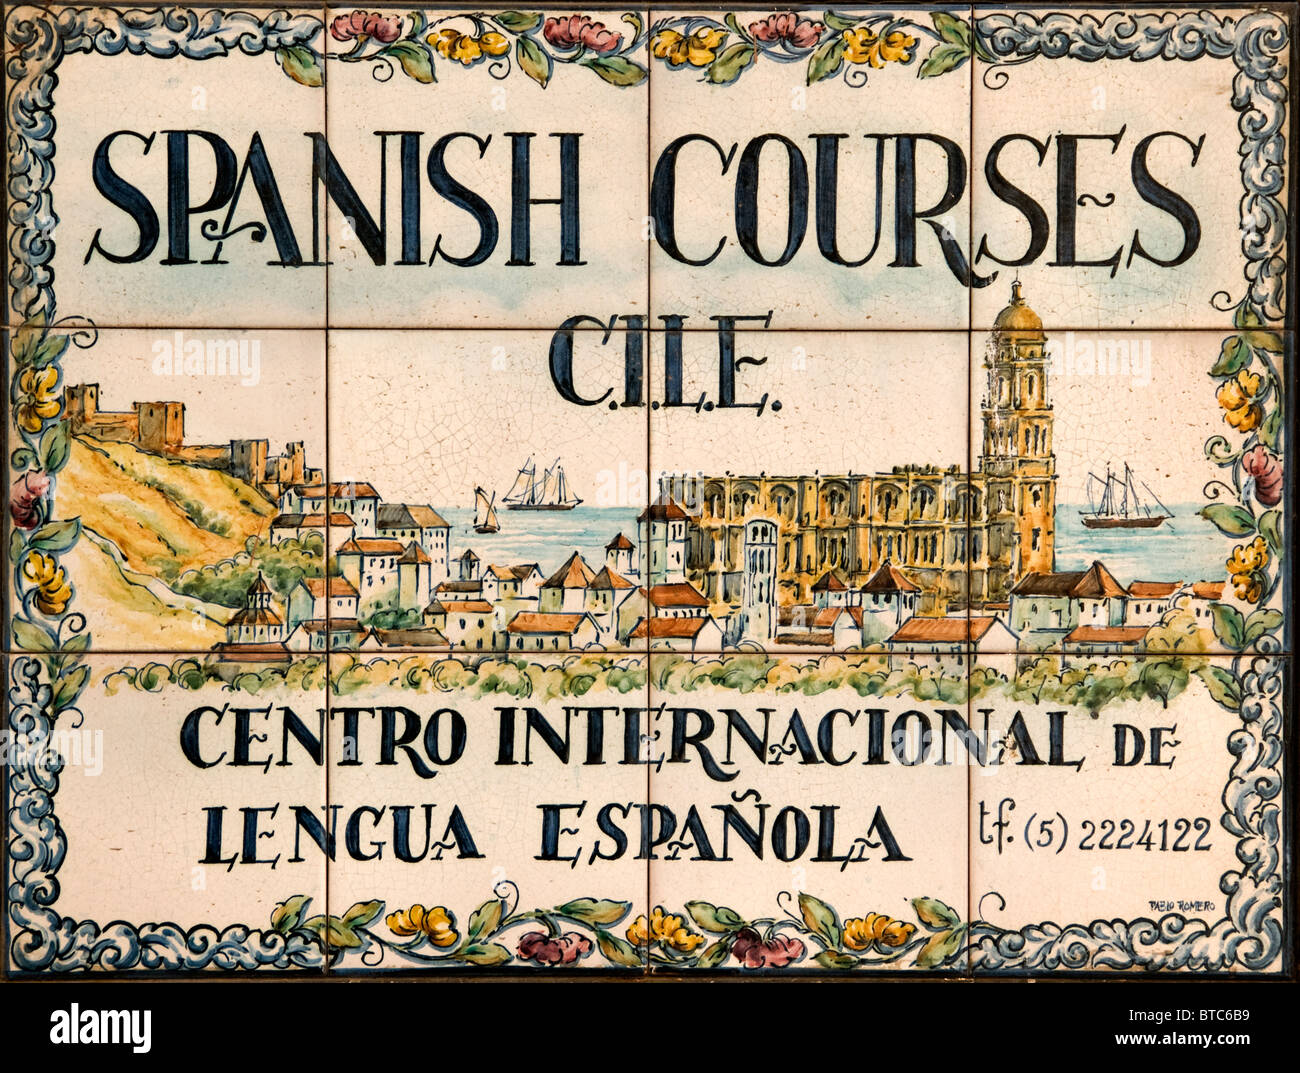 Malaga Spain Andalusia Spanish Language courses - Stock Image